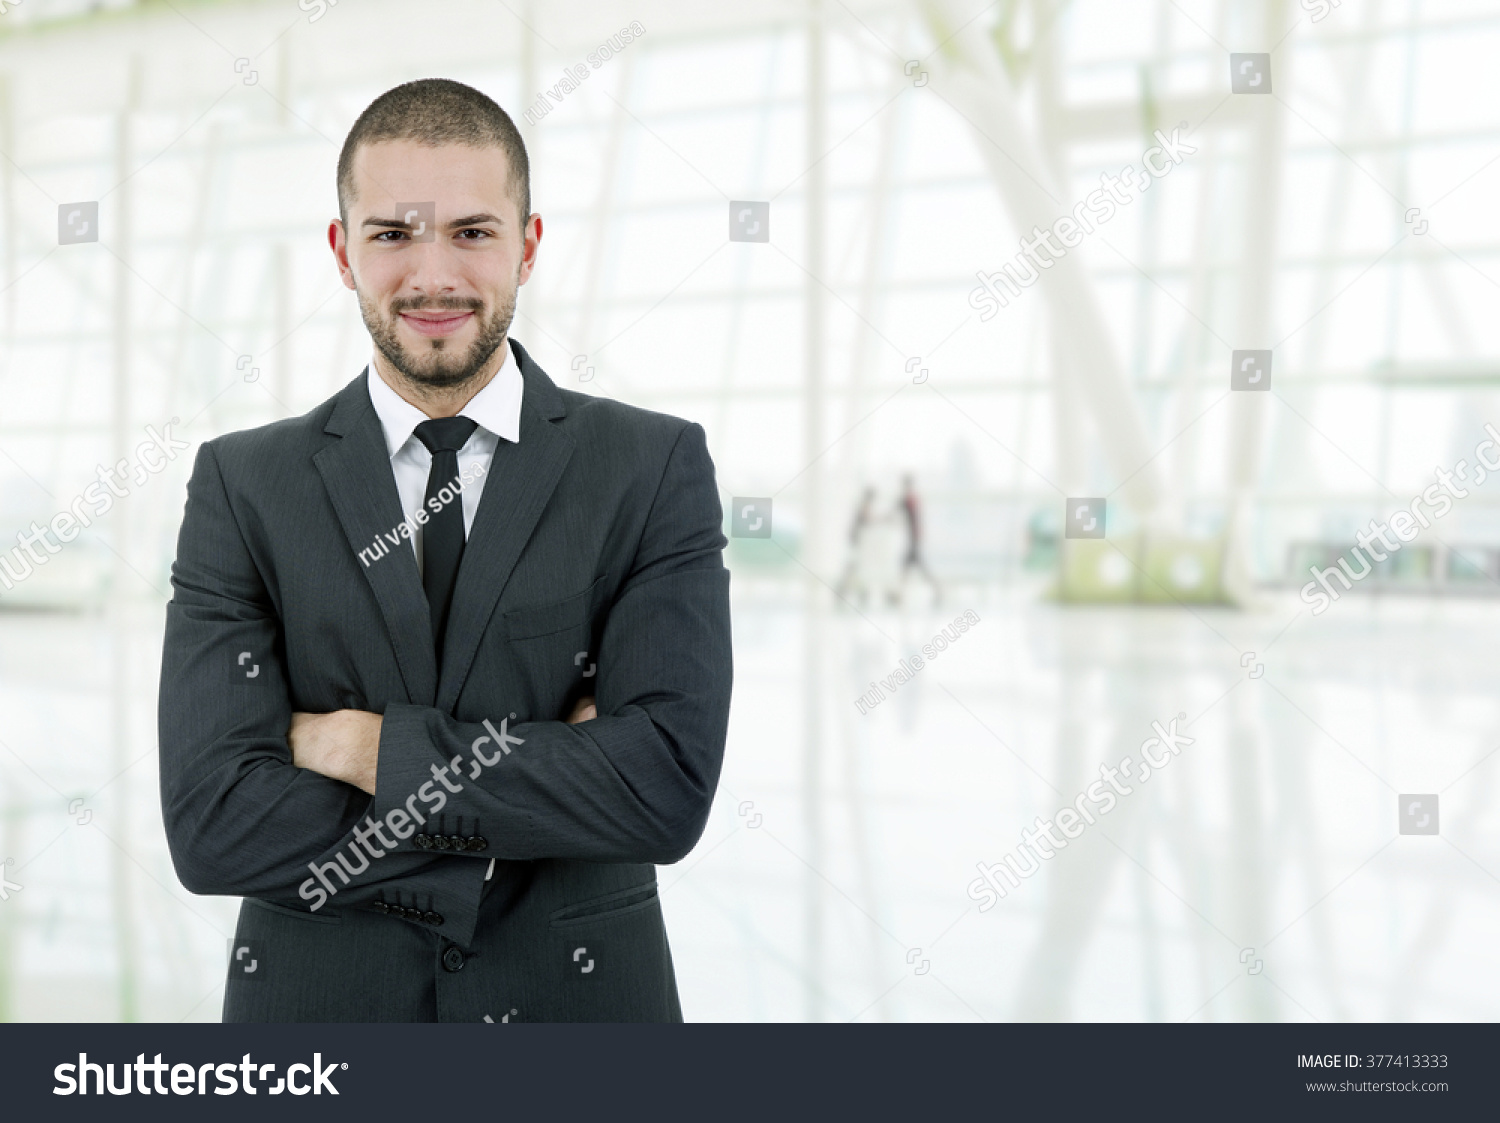 Young business man portrait office stock photo 377413333 shutterstock - Office portrait photography ...